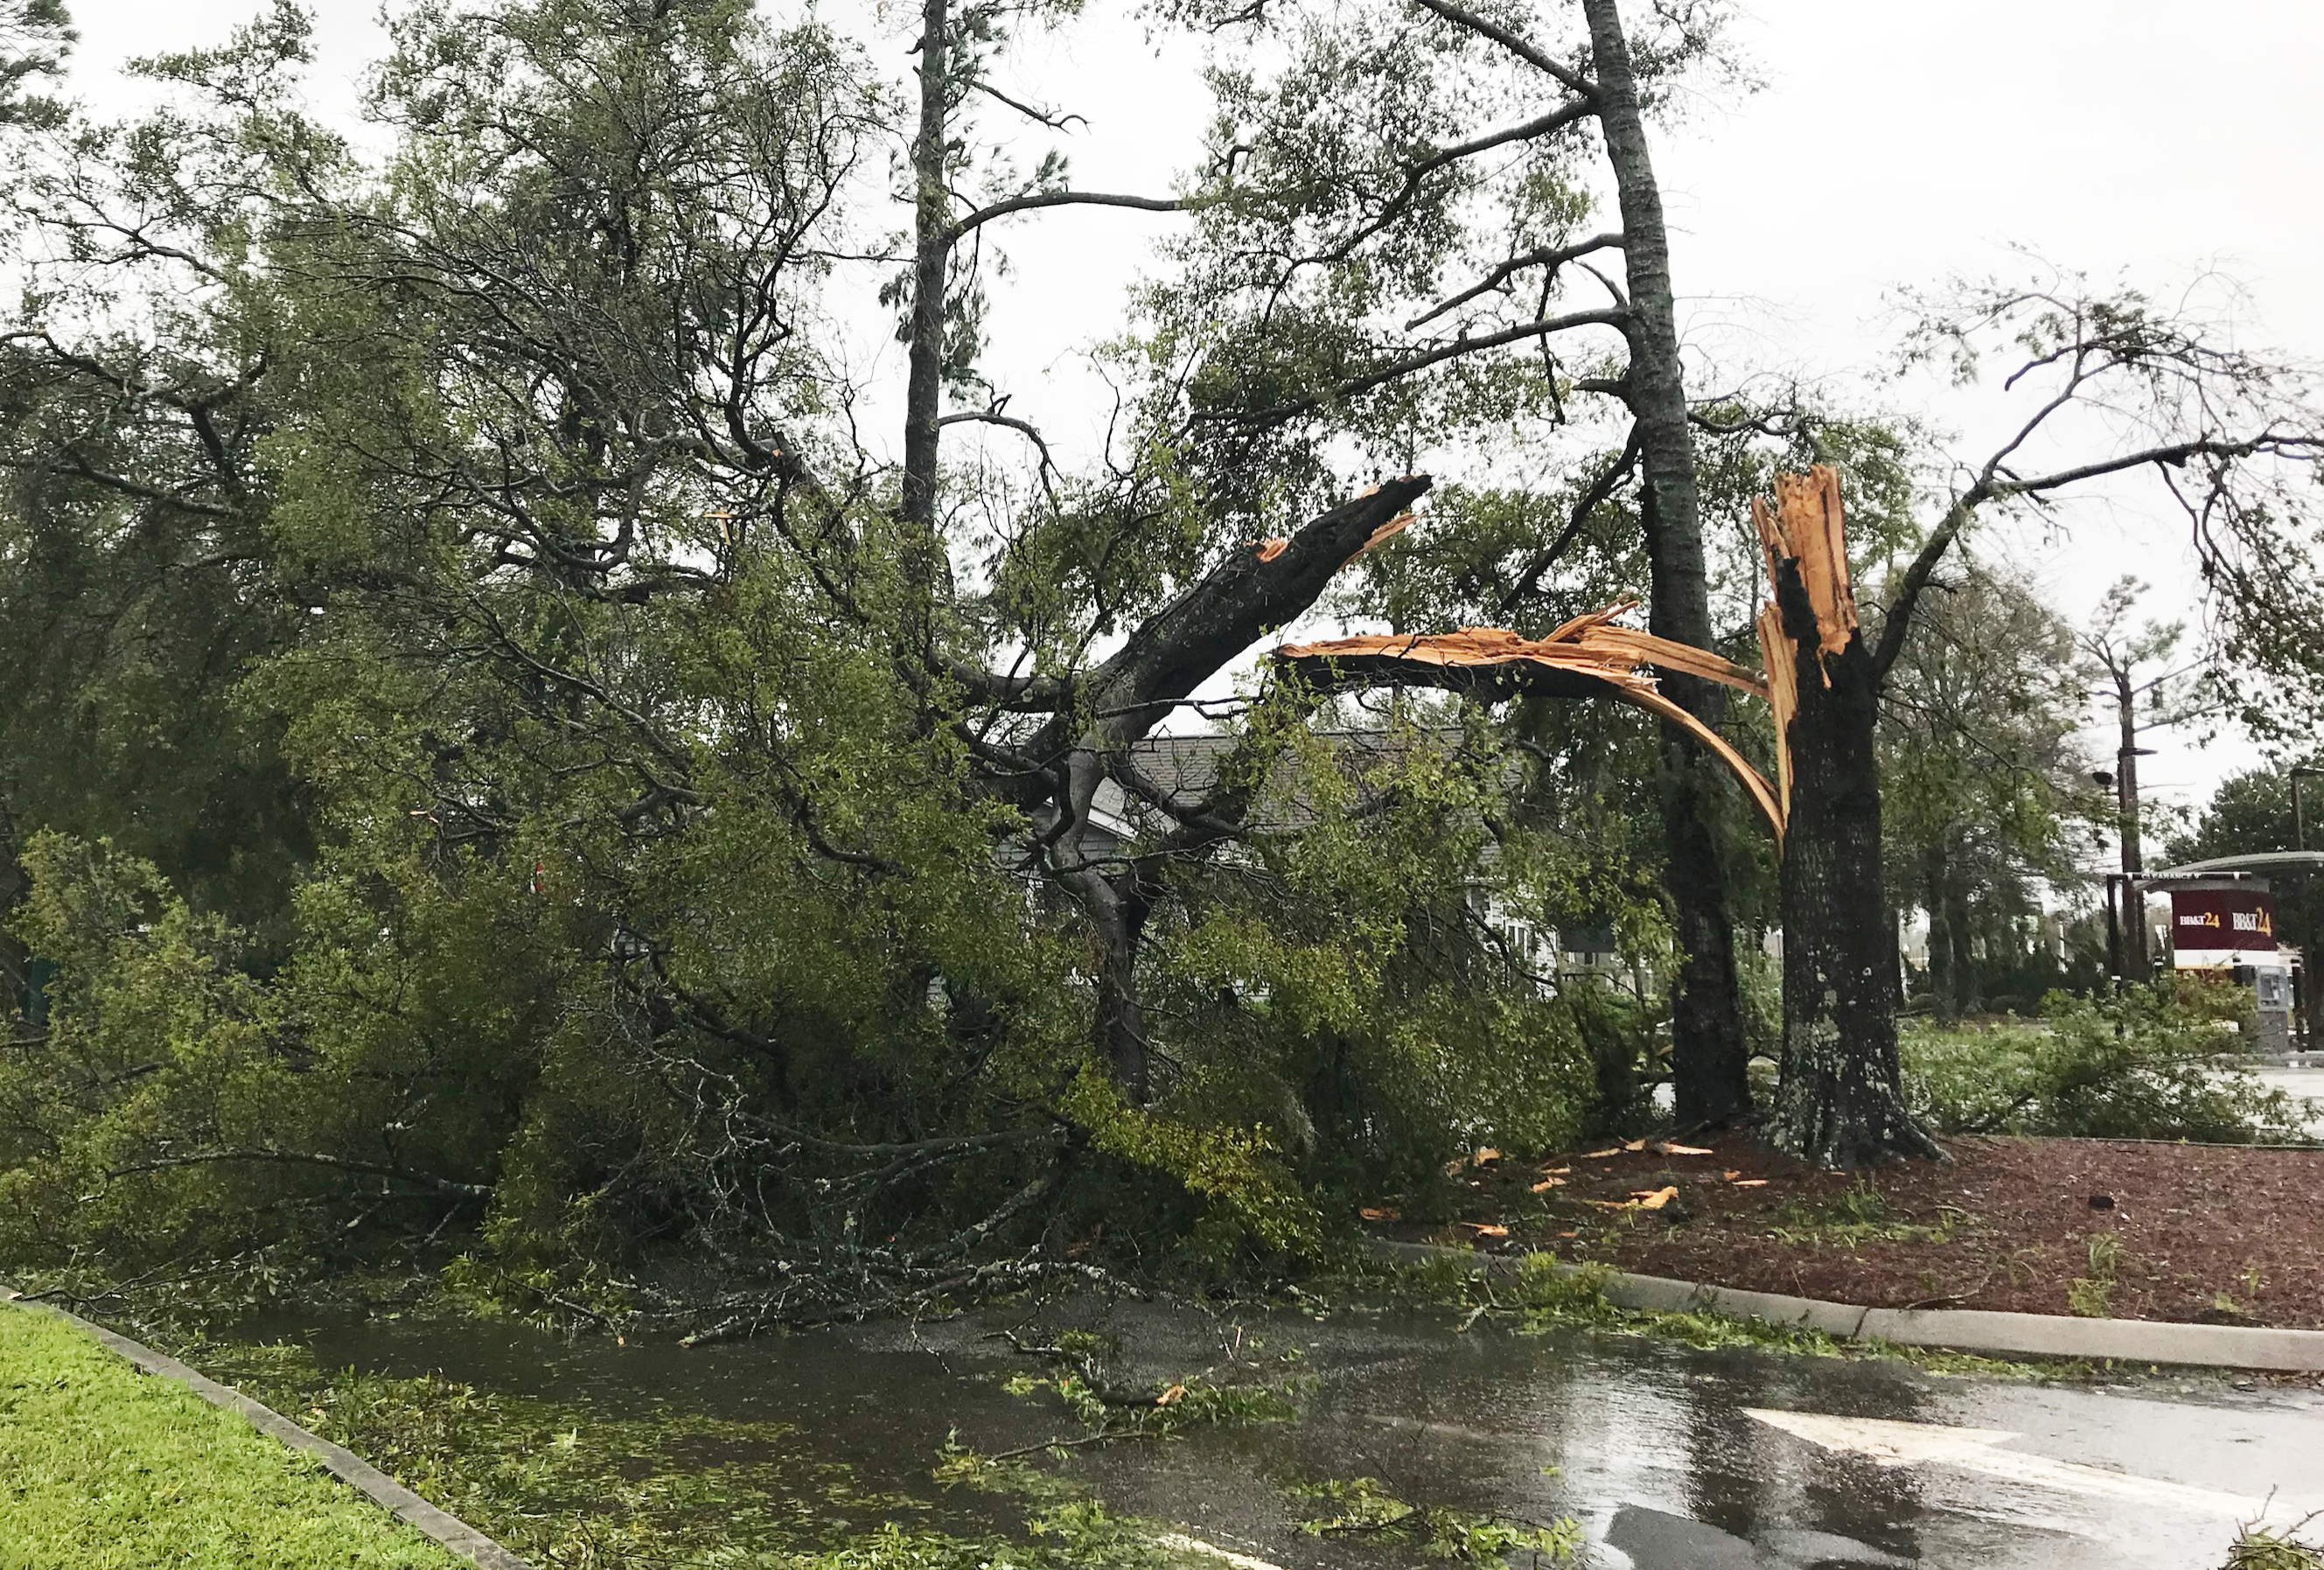 a large tree cracked, split and broken after storm in North Carolina - Hurricane Florence